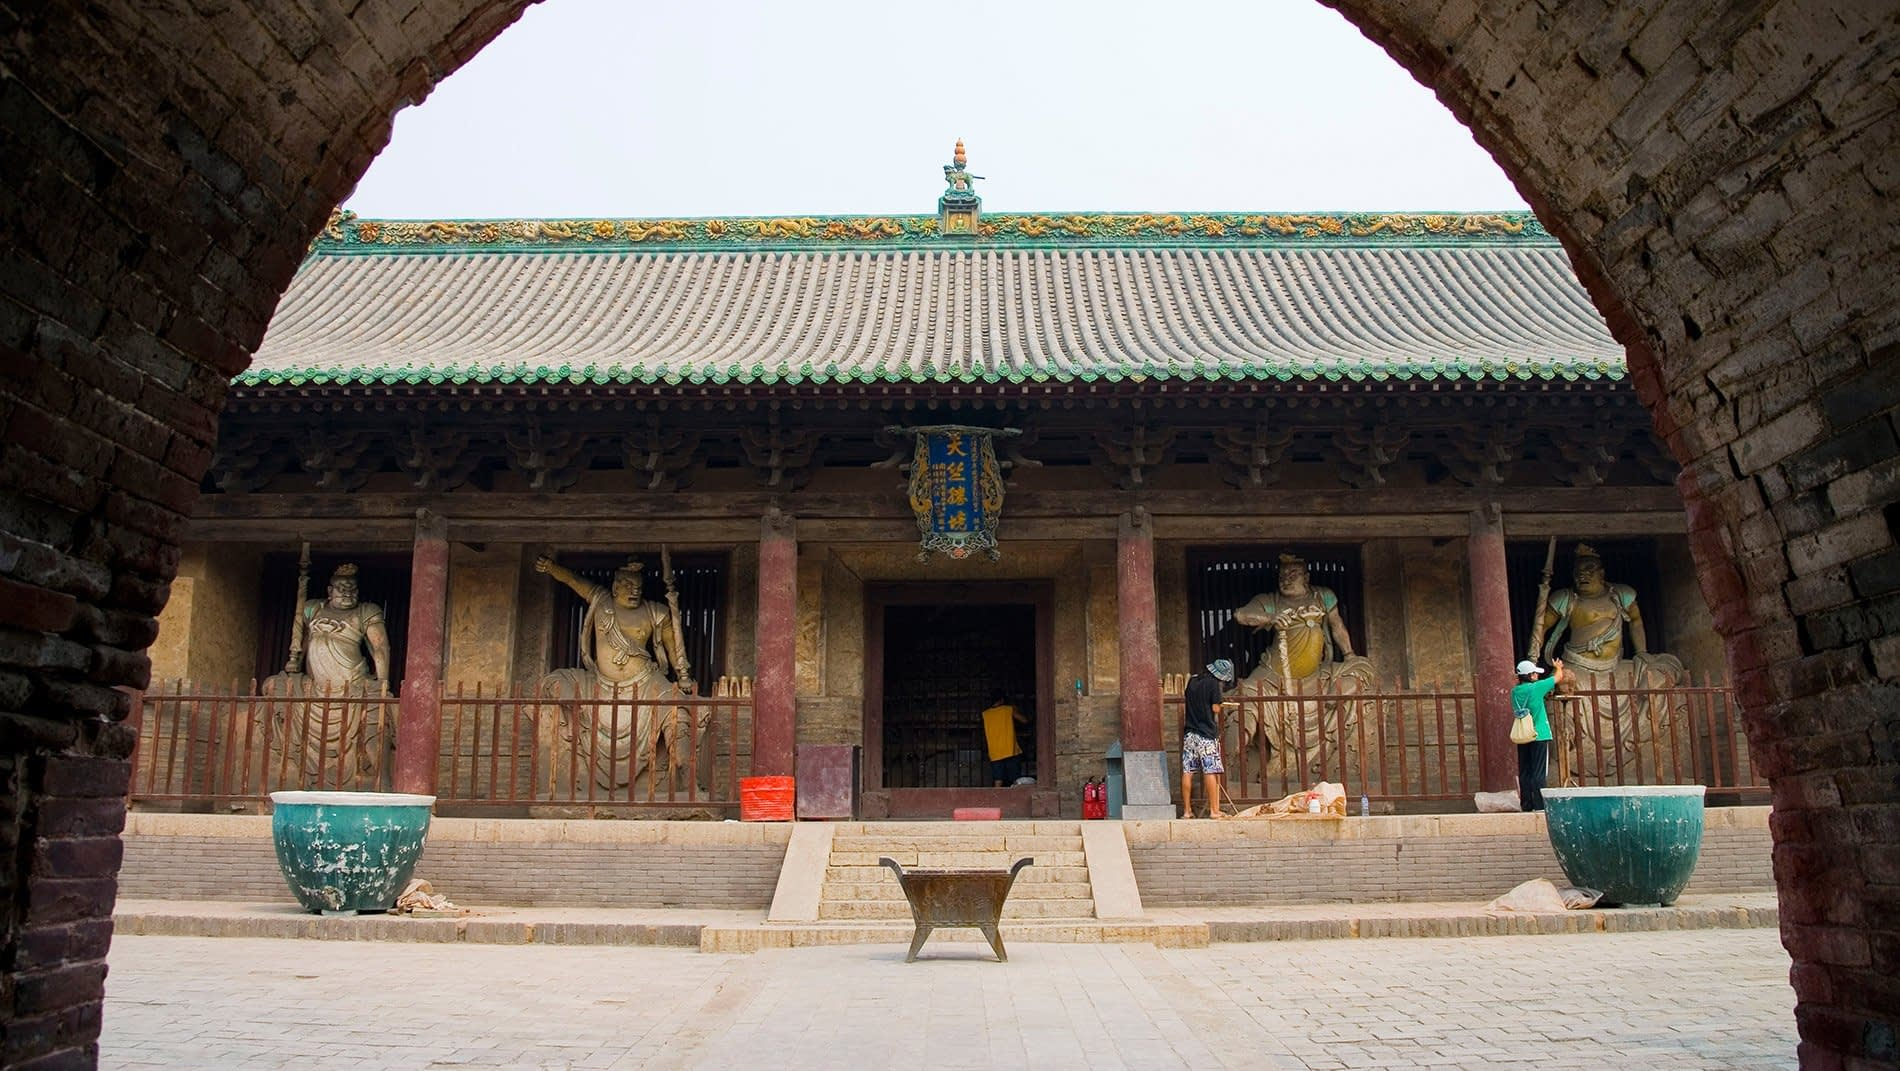 Shuanglin Temple~Because of such vicissitudes as the Cultural Revolution, it is rare to see well-preserved statues in China. Shuanglin Temple offers the exceptional opportunity to see statues from as early as the Song as well as the Ming and Qing dynasties. (960-1911)